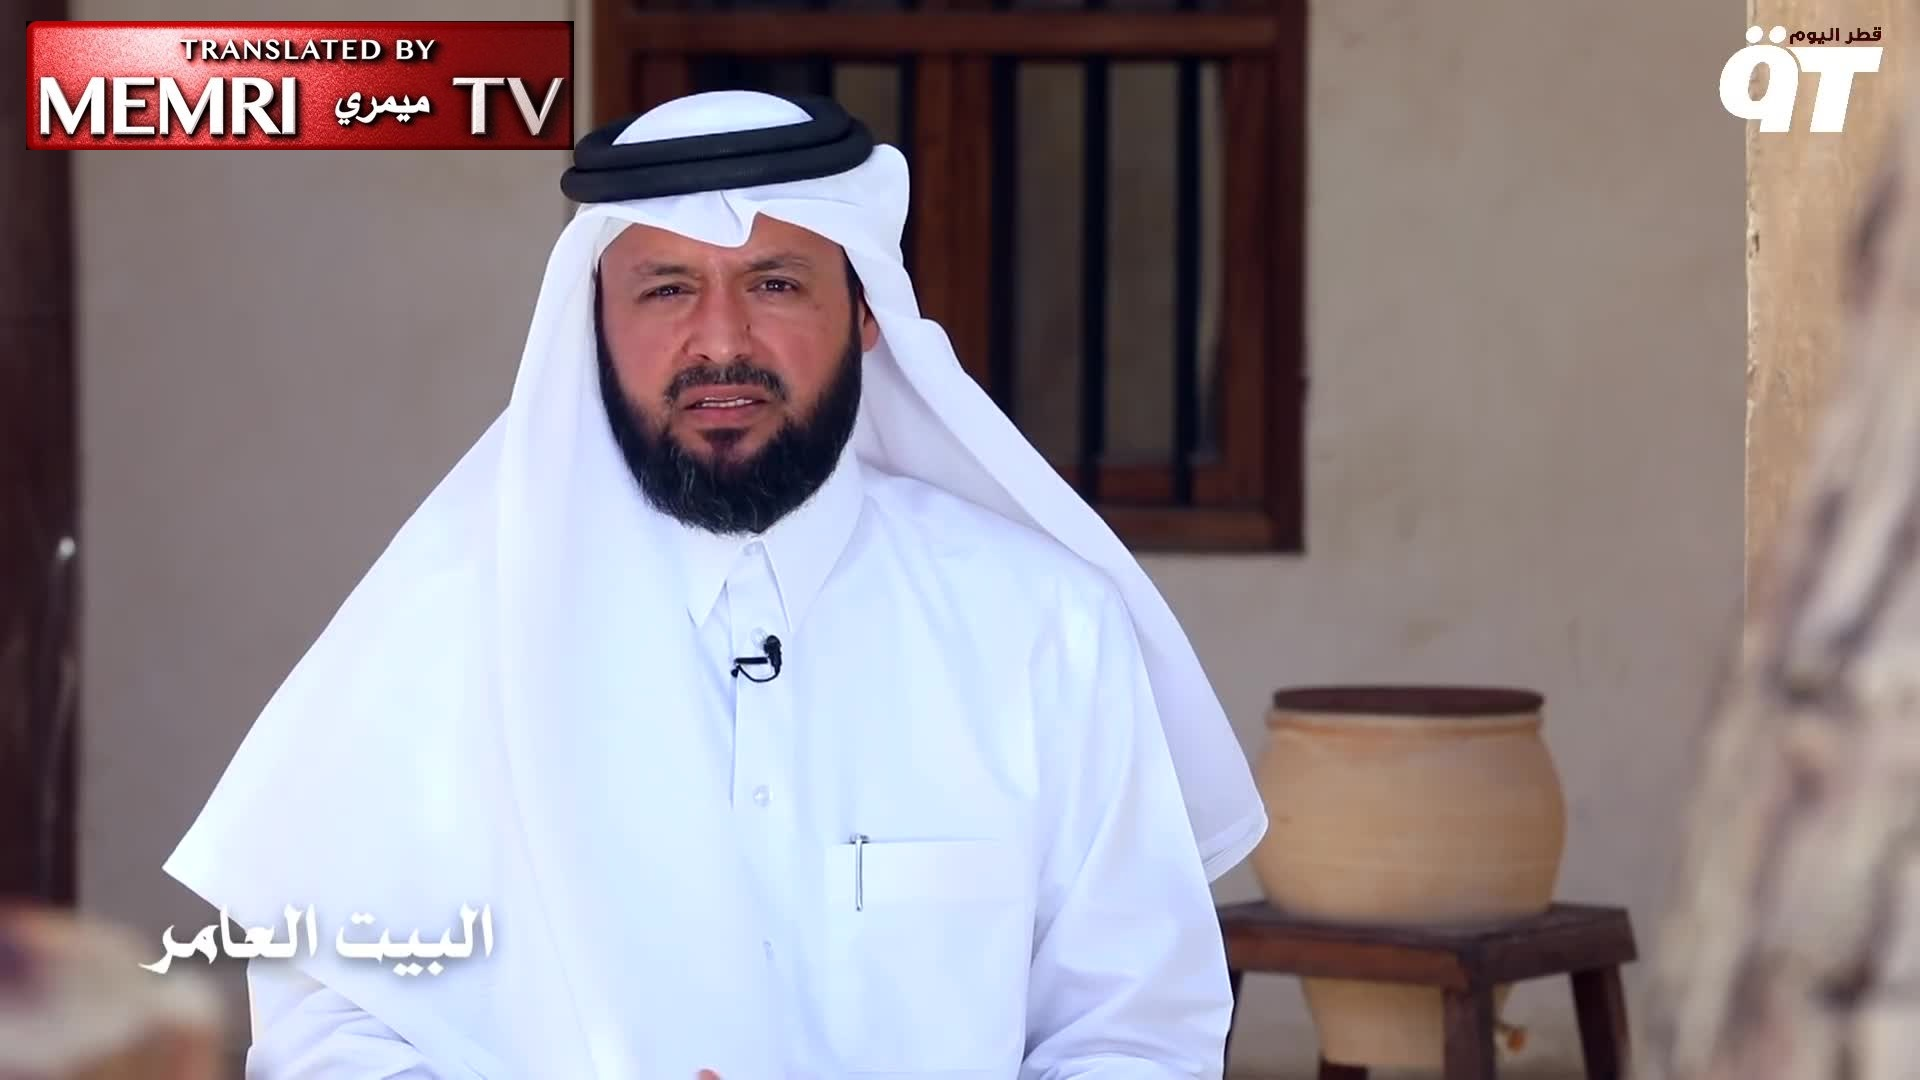 Qatari TV Host Ali Al-Muhannadi: Women Must Leave the House as Little as Possible and Obtain Husband's Permission Whenever They Do